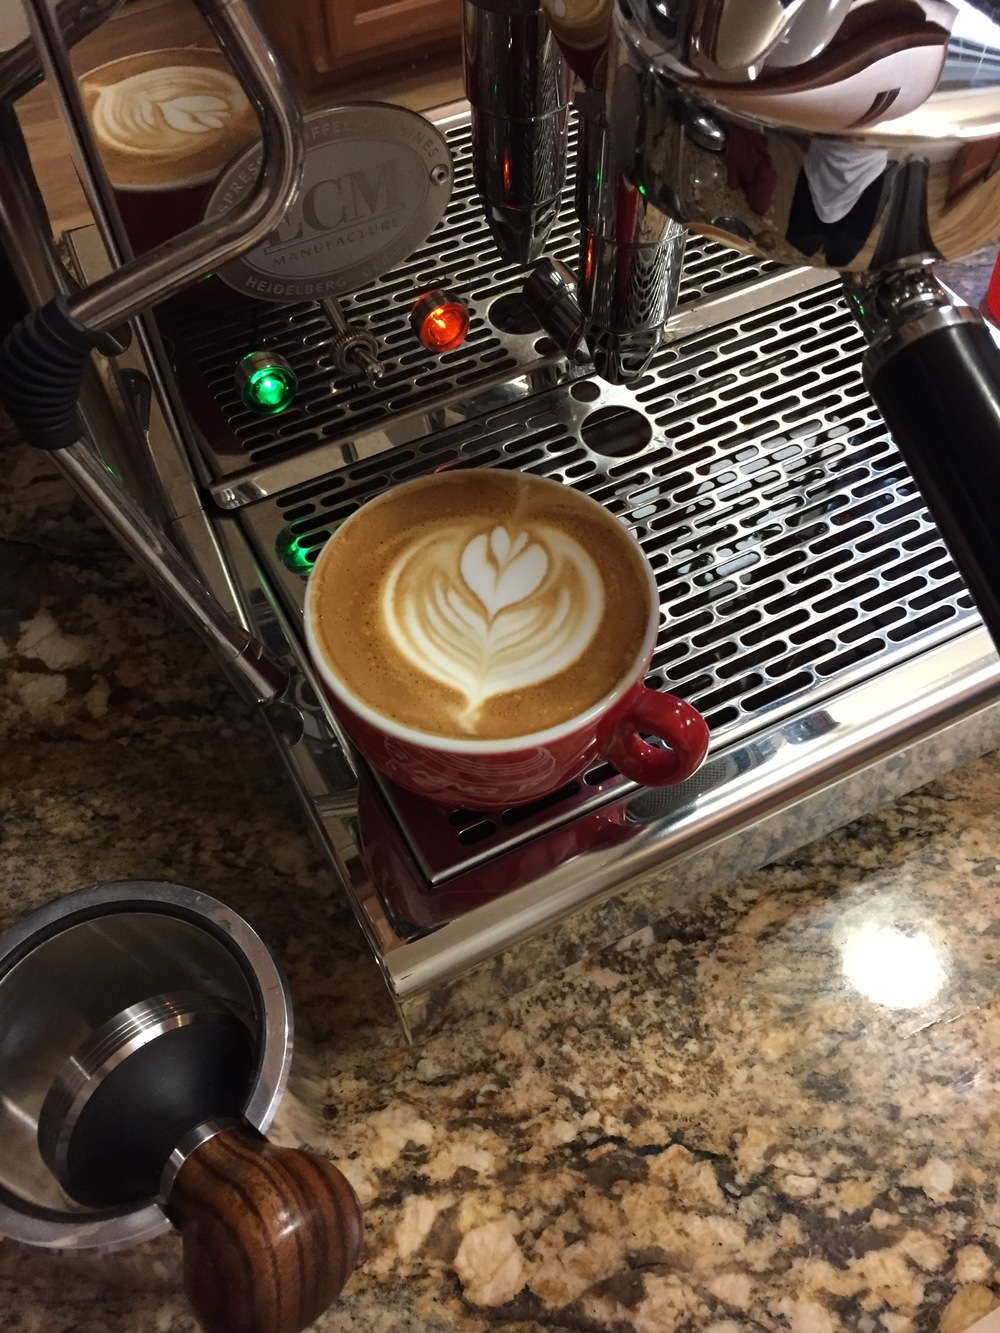 Nice little comfort cappa with a bit of zing to it.